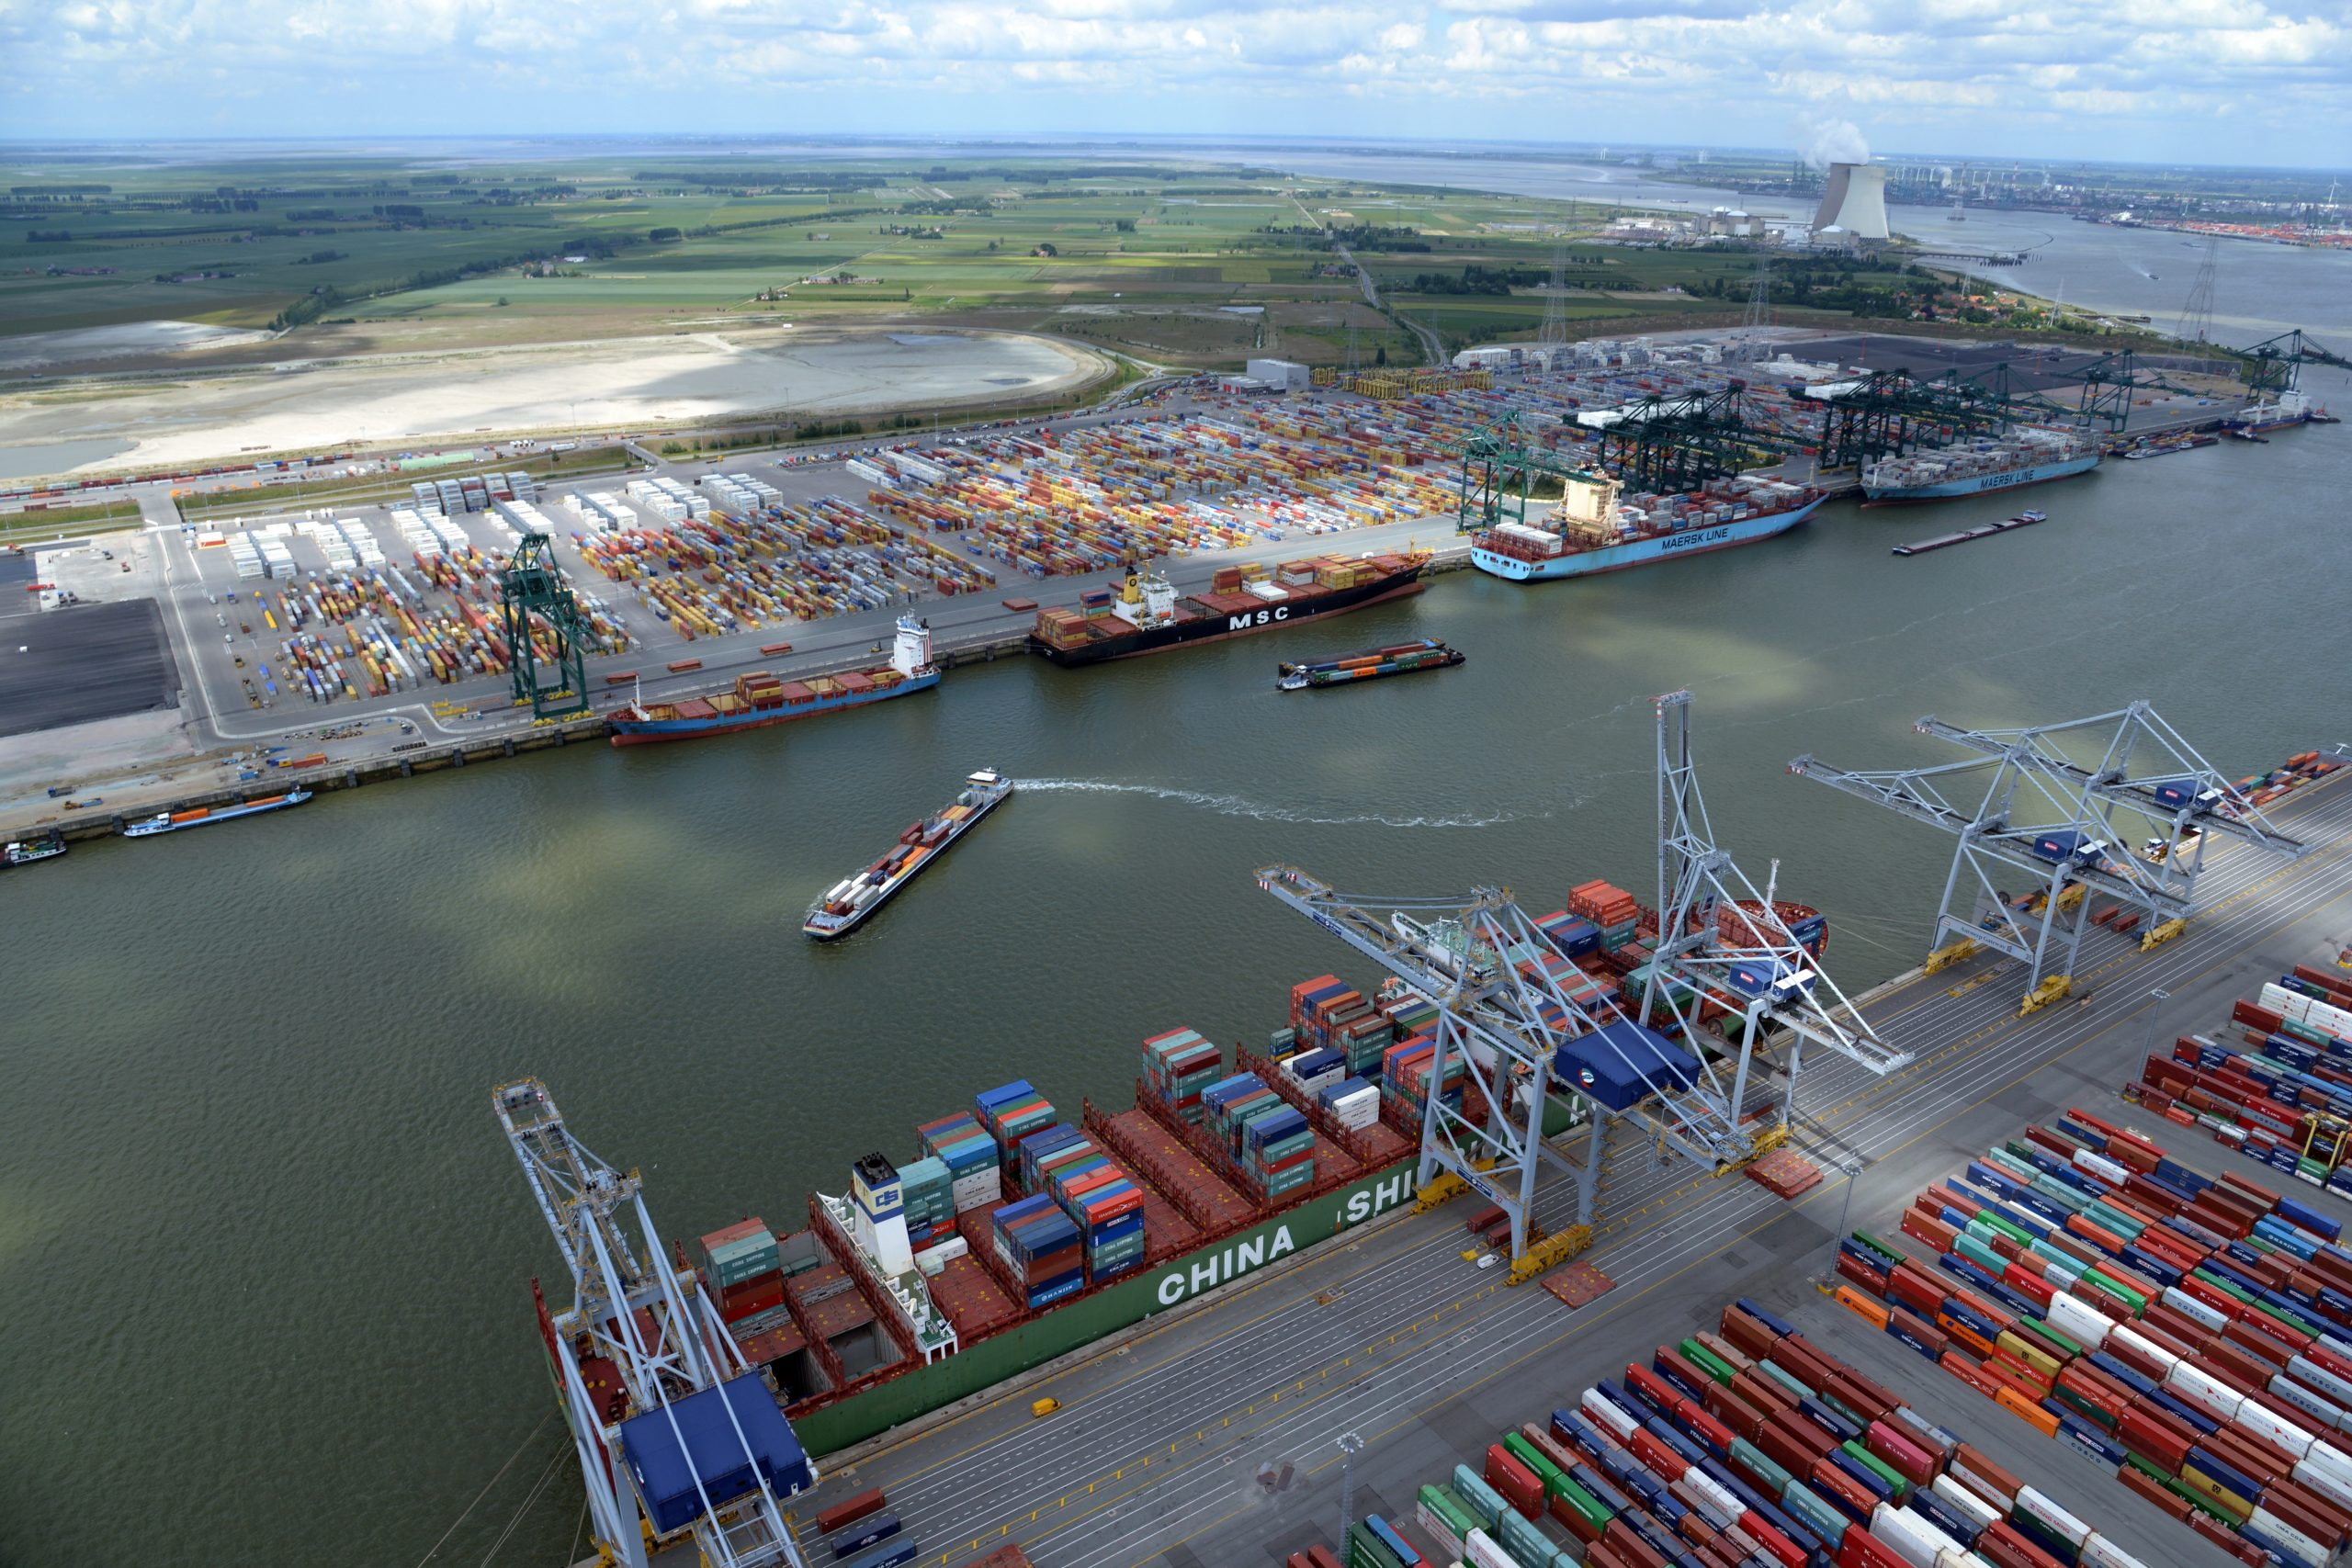 Increased containerisation has led to a lower conventional volume of fruit (down 26.5% to 377,418 tons) at the Port of Antwerp.